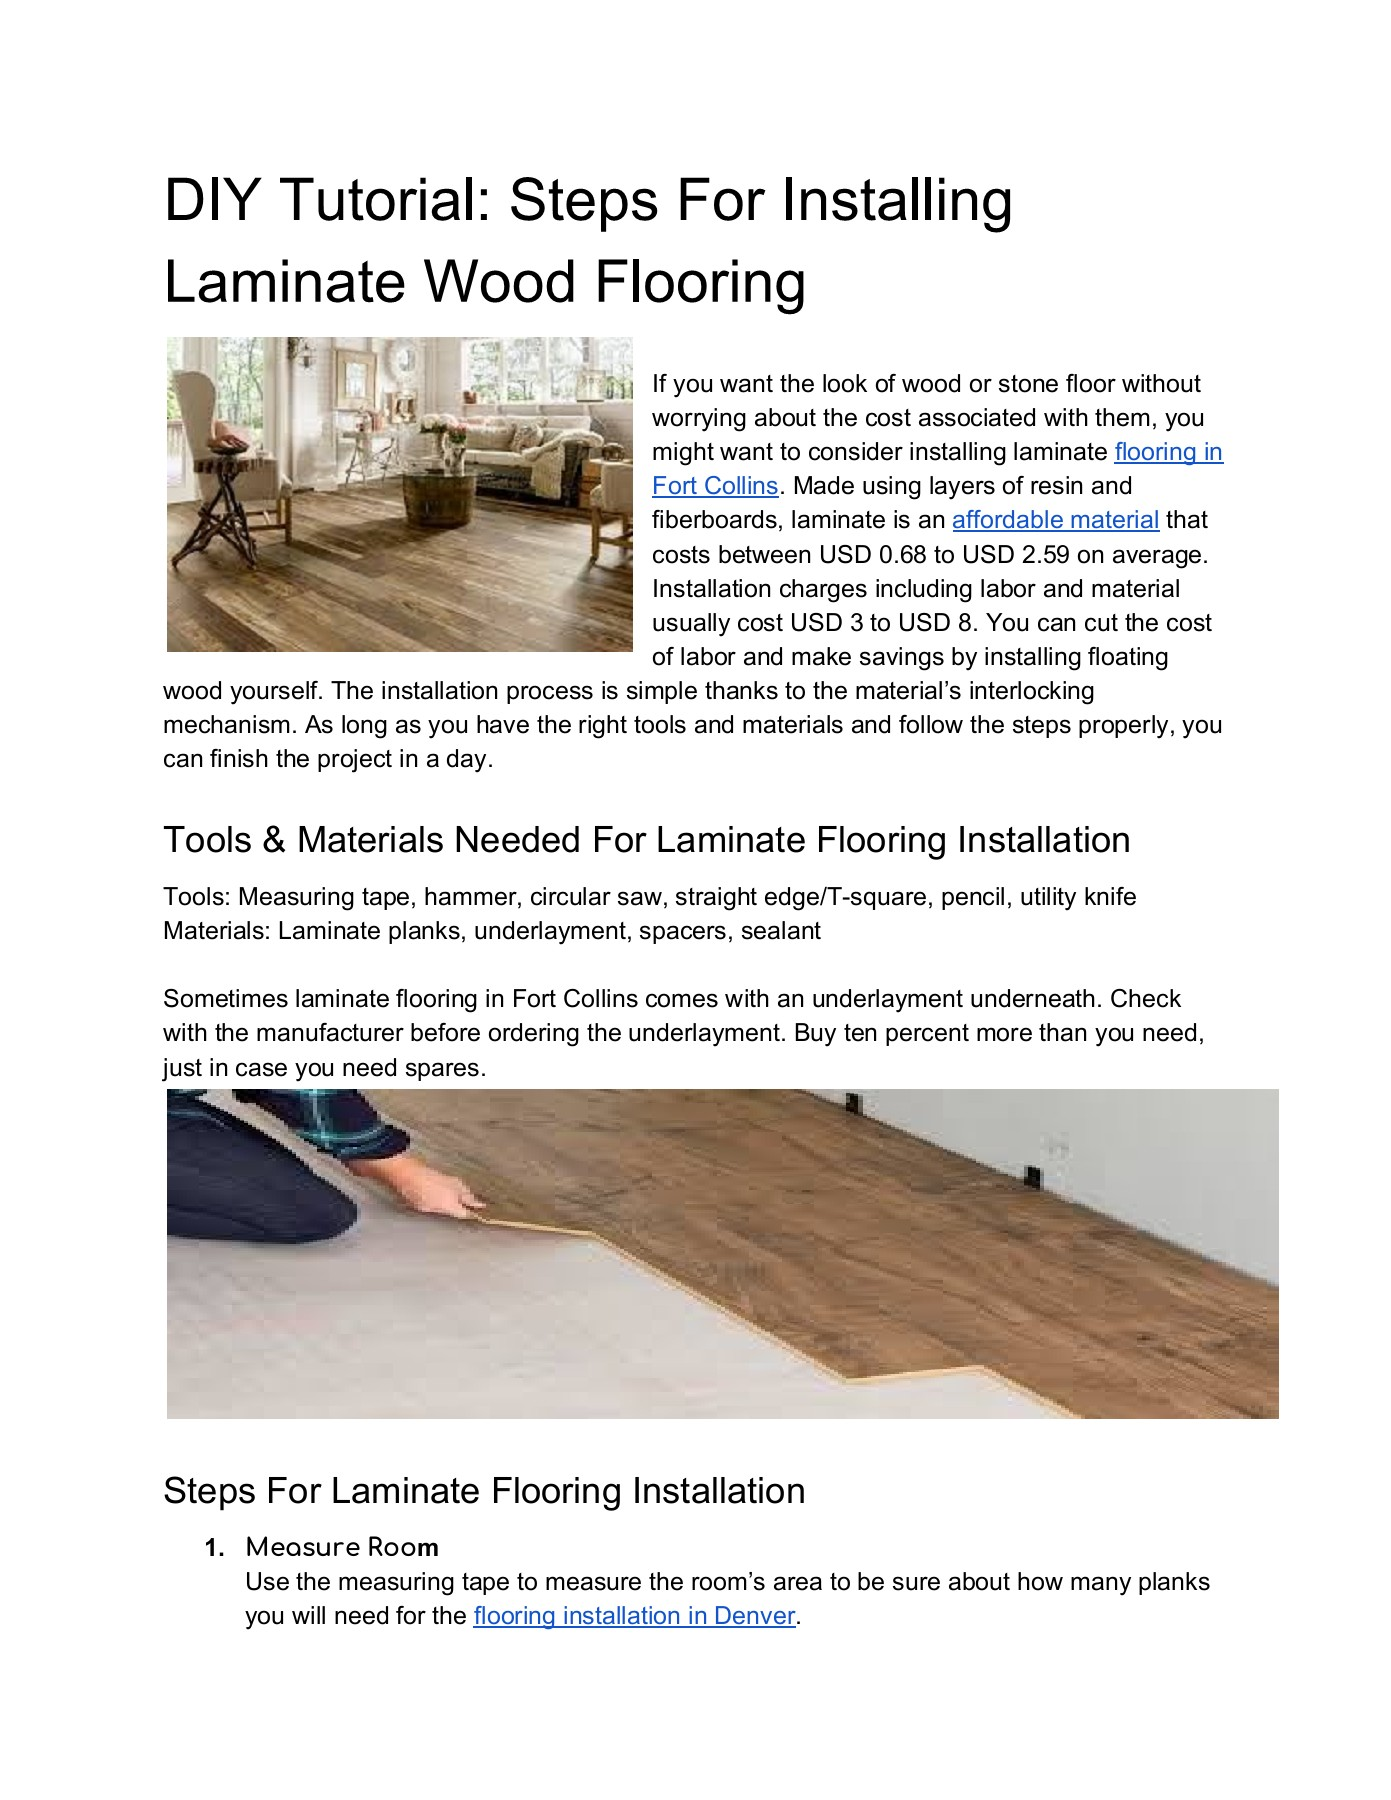 Installing Laminate Wood Flooring Flip